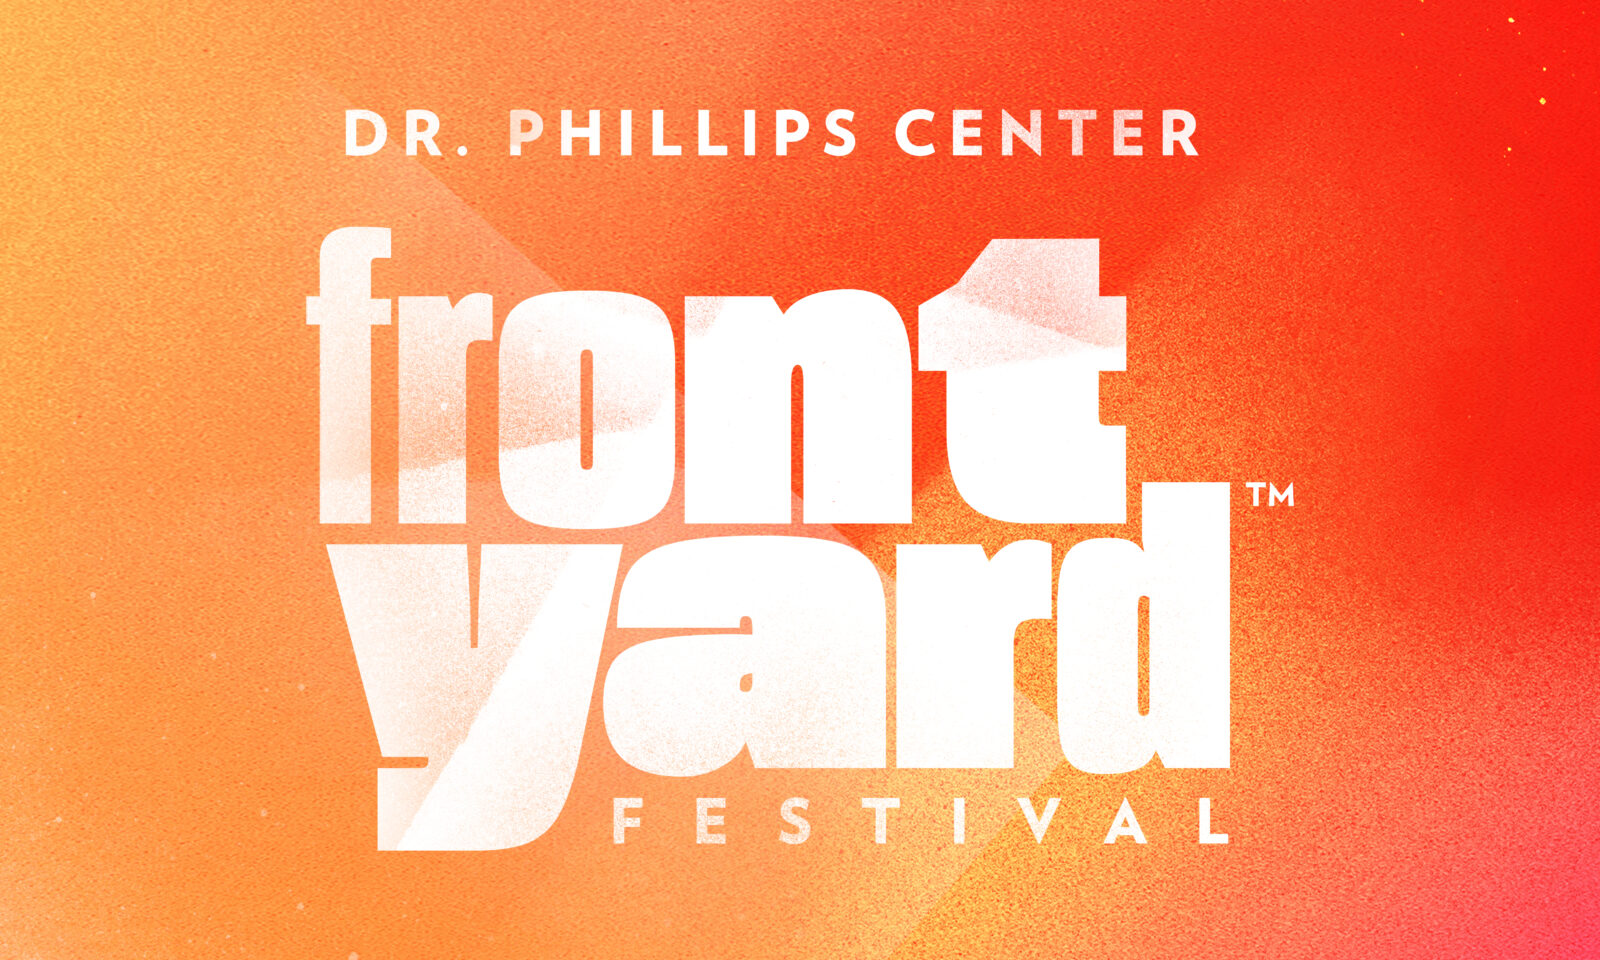 Dr Phillips Center Front Yard Festival - Logo